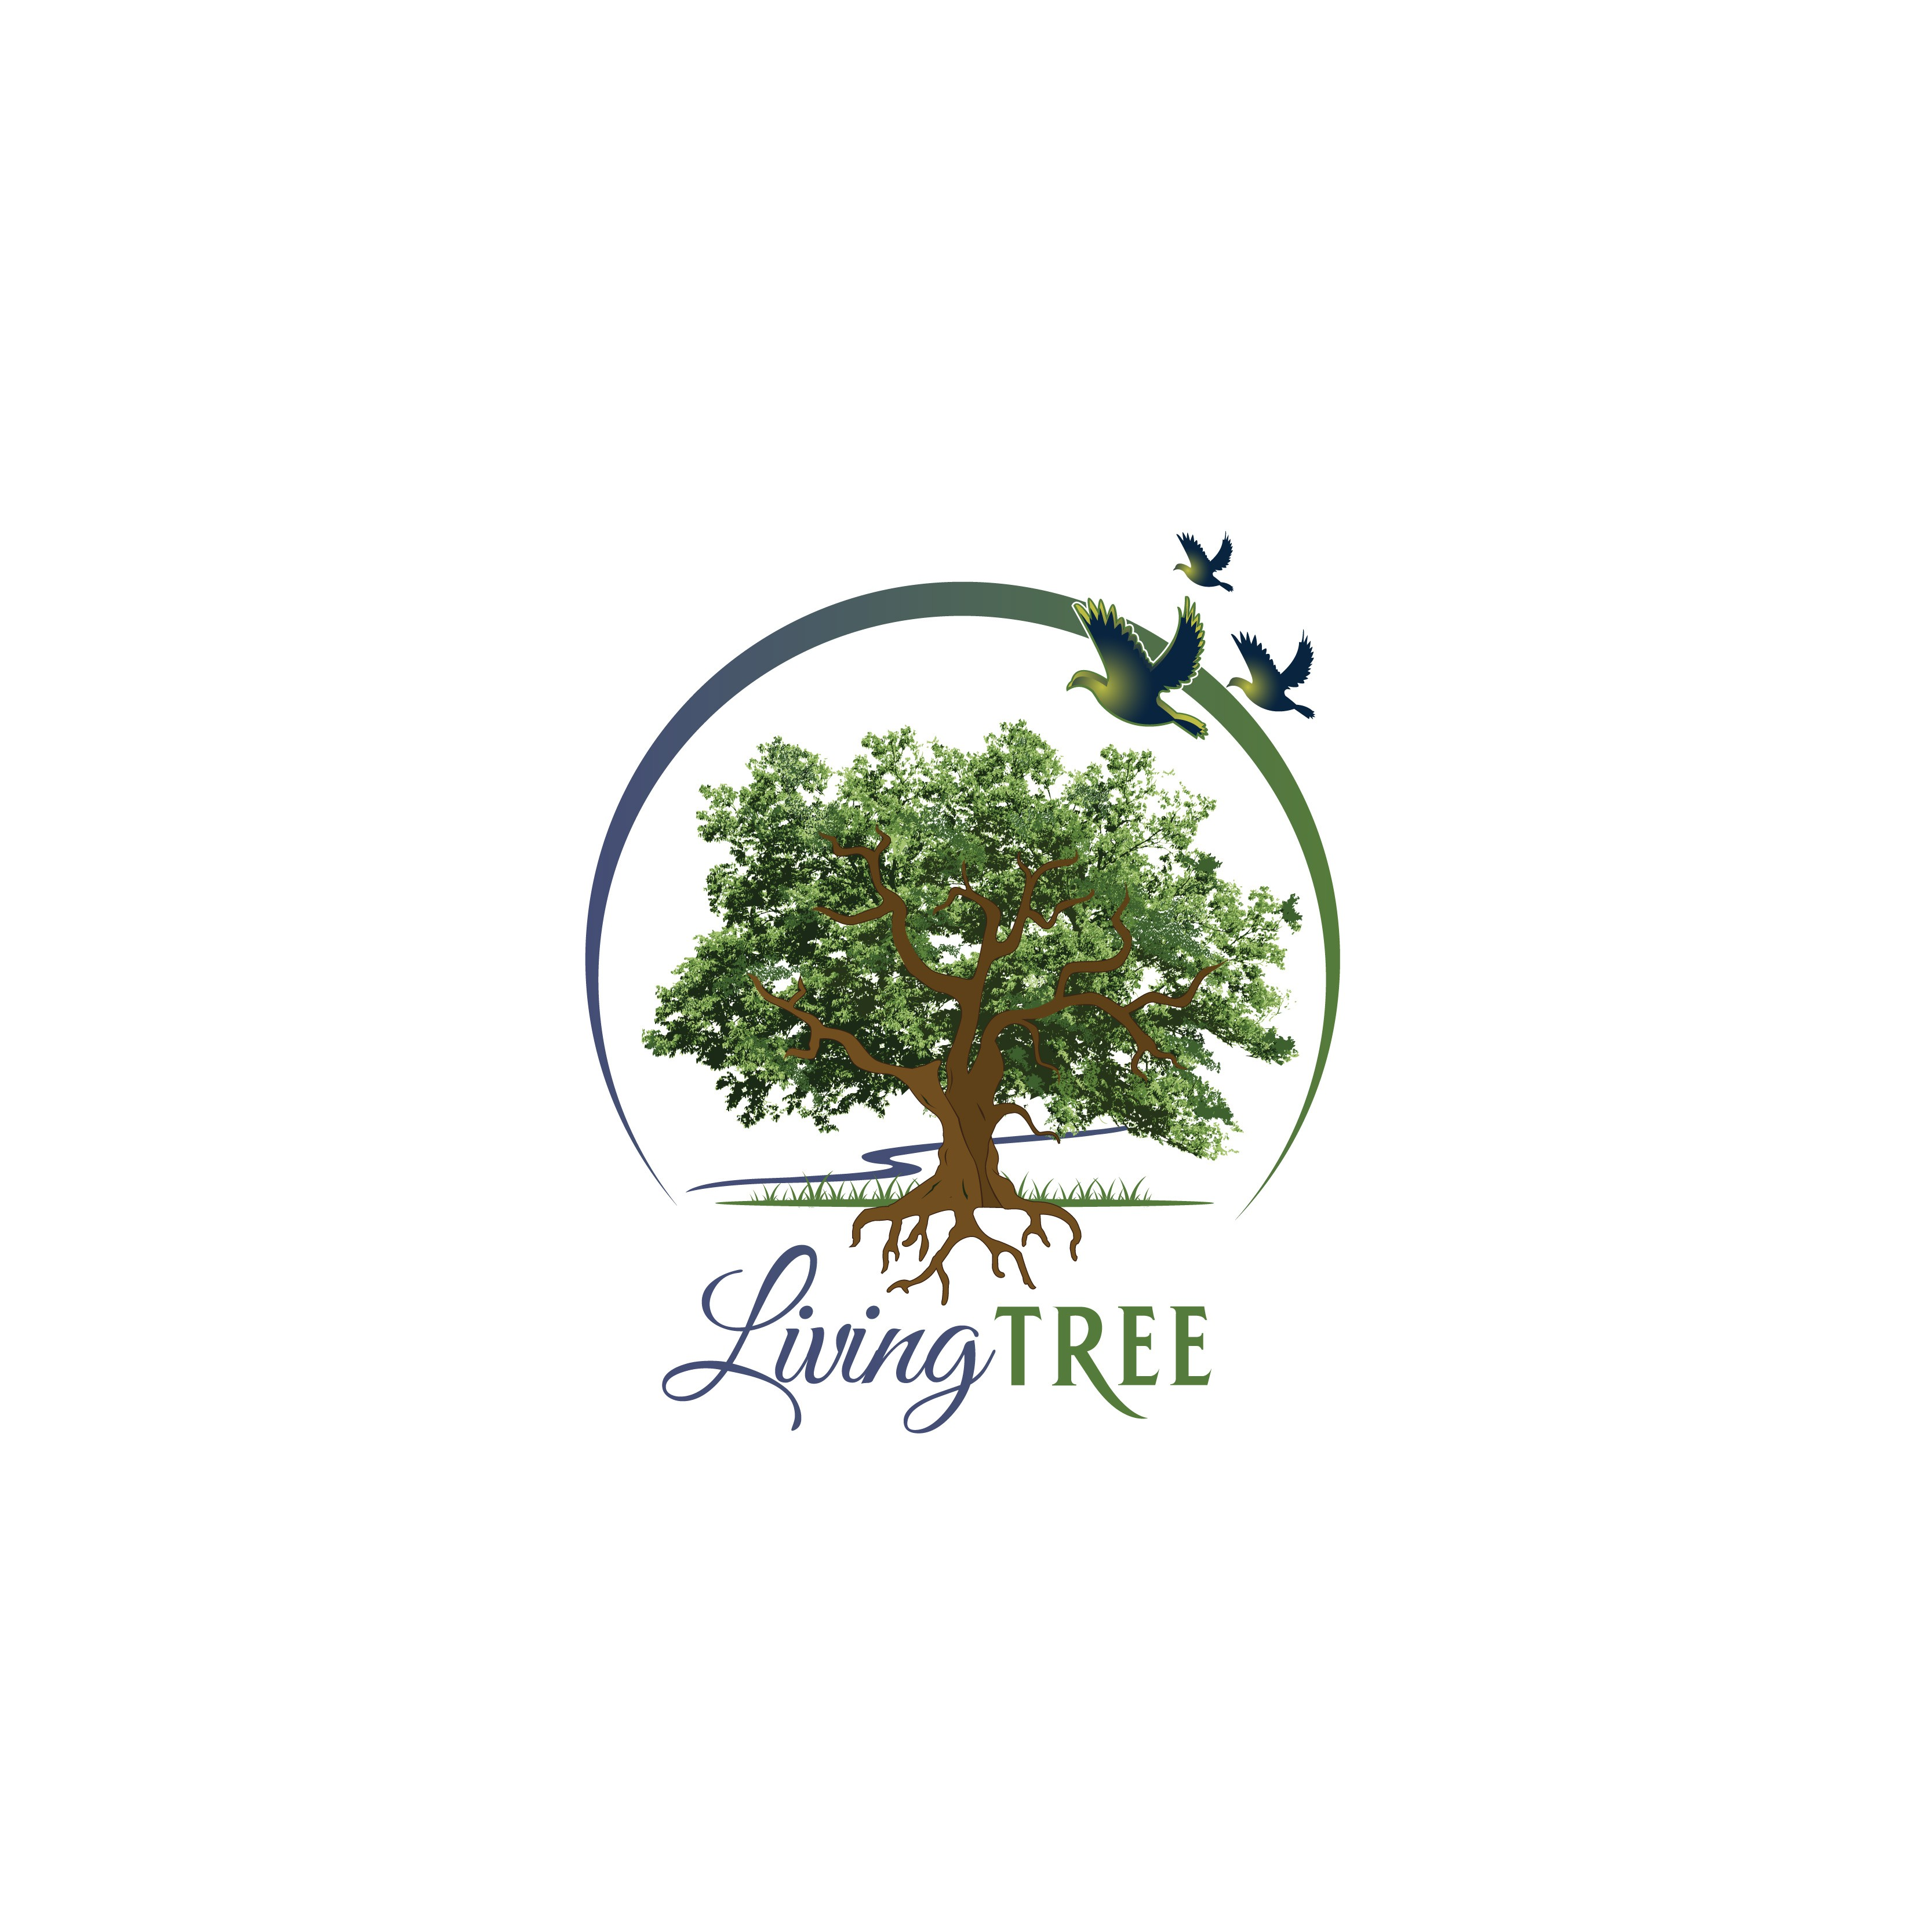 A simple design for LivingTree, be creative!